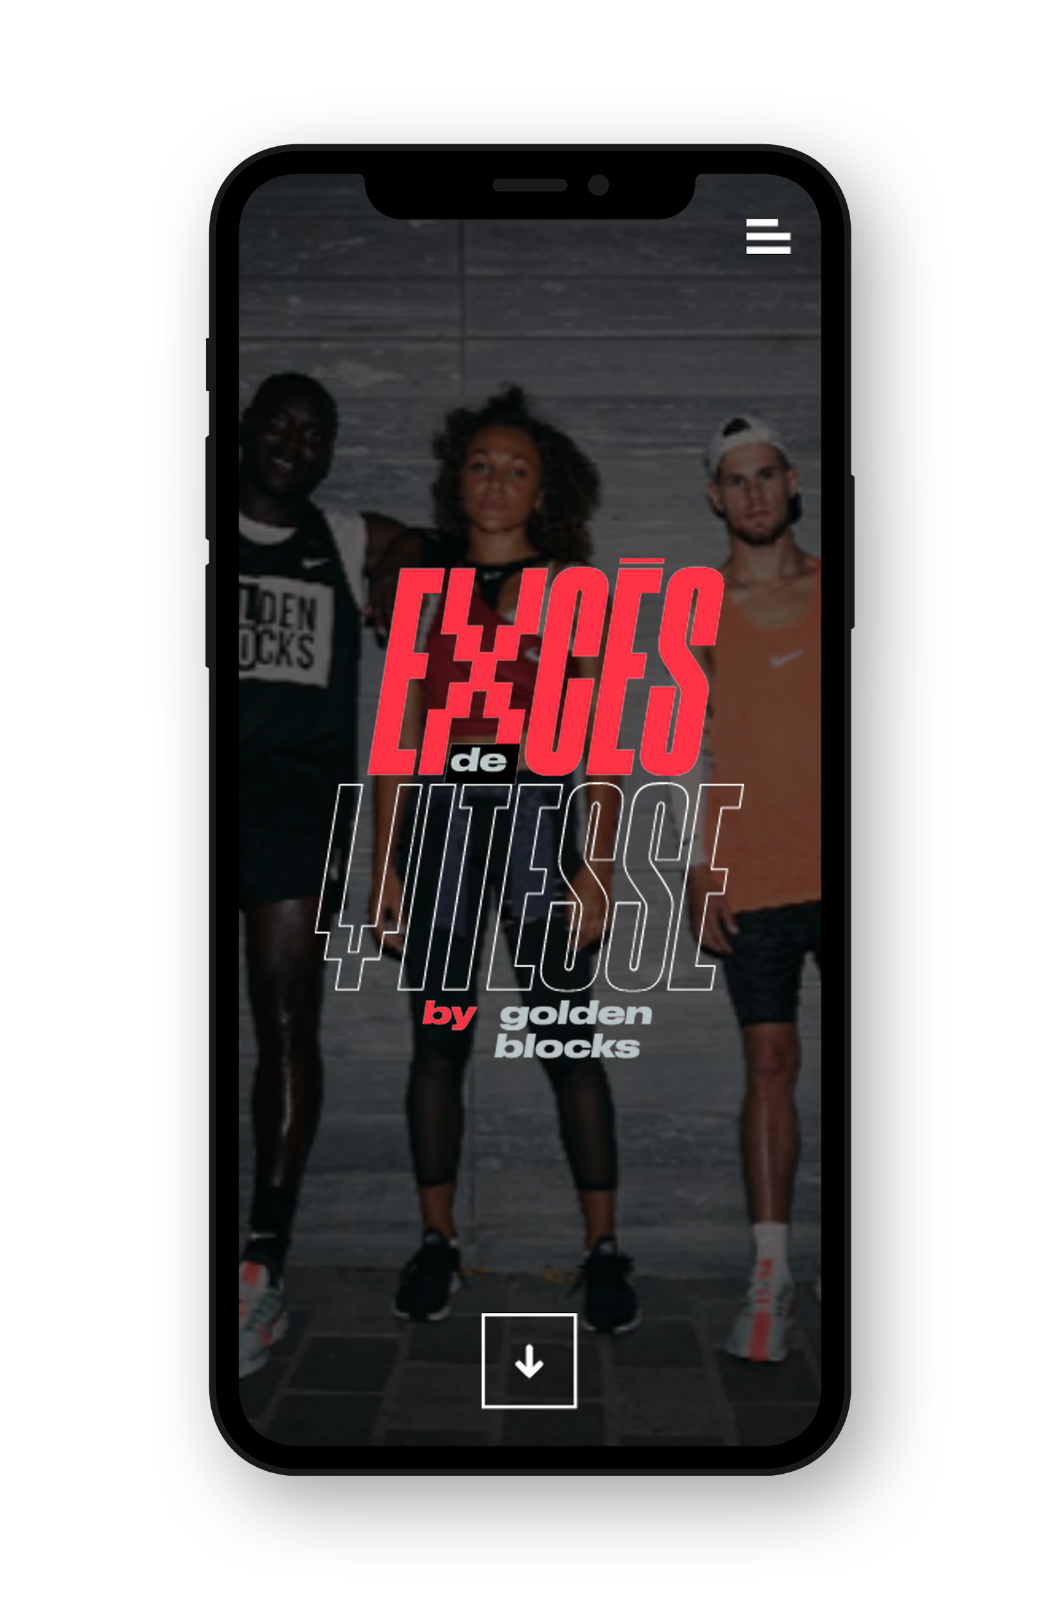 Image-site-web-run-design-web-3-nike-exces-de-vitesse-agence-conseil-en-communication-Letb-synergie